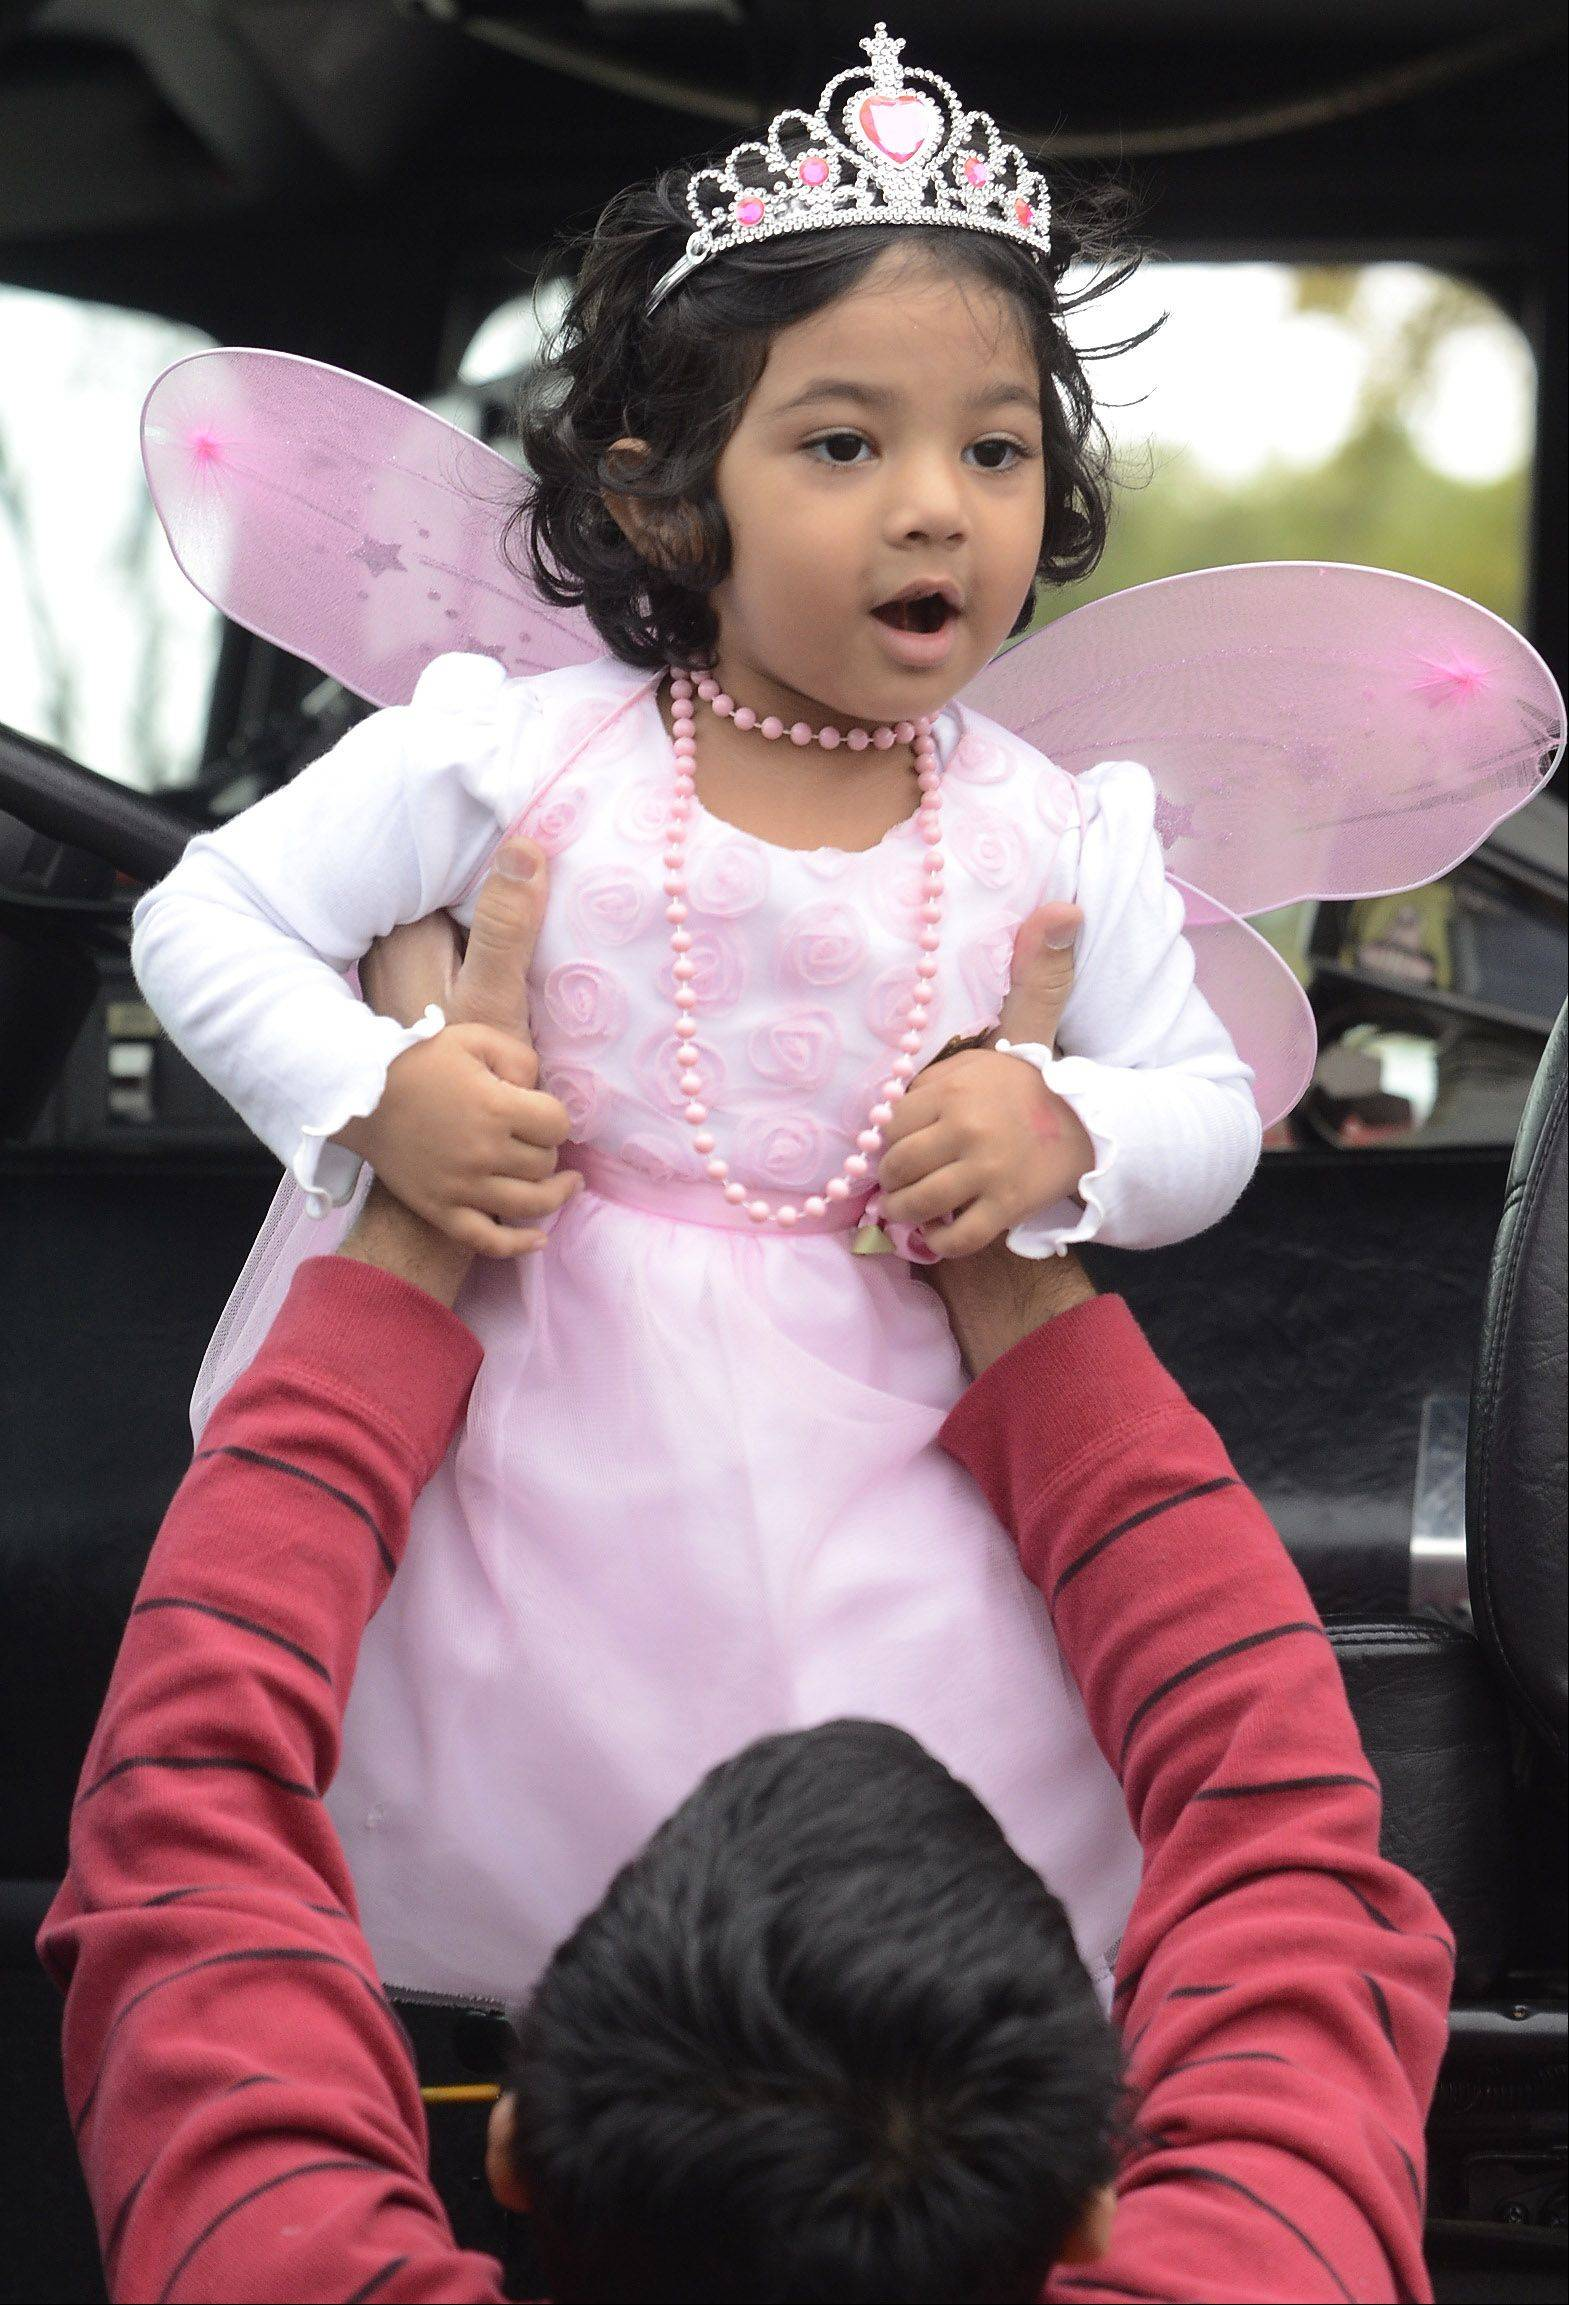 Dressed as a princess, Stuti Jain is helped down from a fire truck by her dad Ashish, during Trucks, Trunks and Treats at the Vernon Hills Sullivan Community Center Saturday.